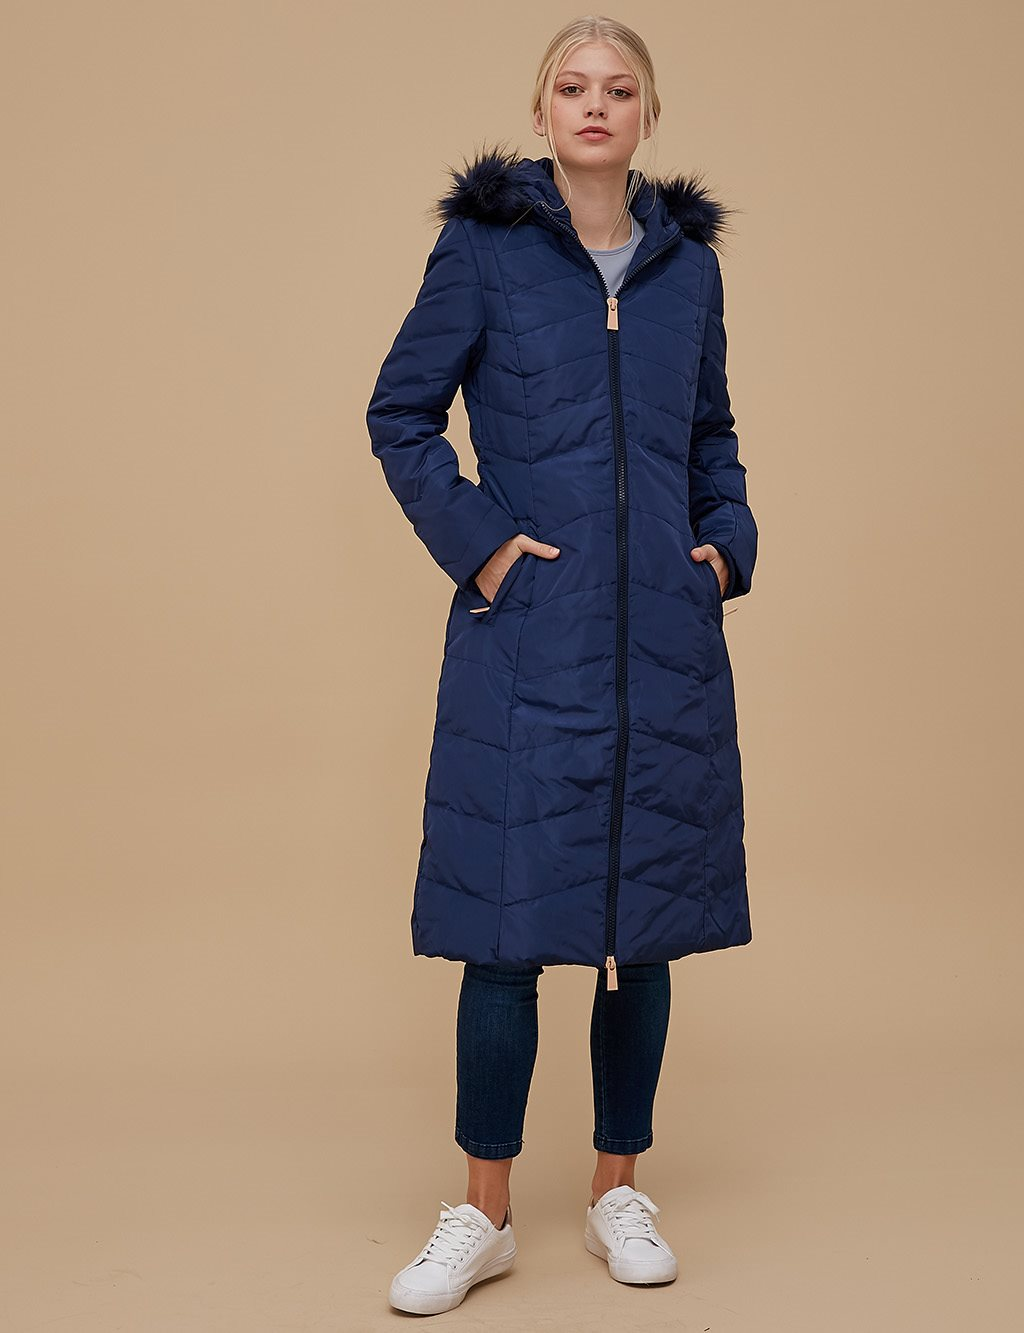 Goose-Quill Coat Navy A8 27011